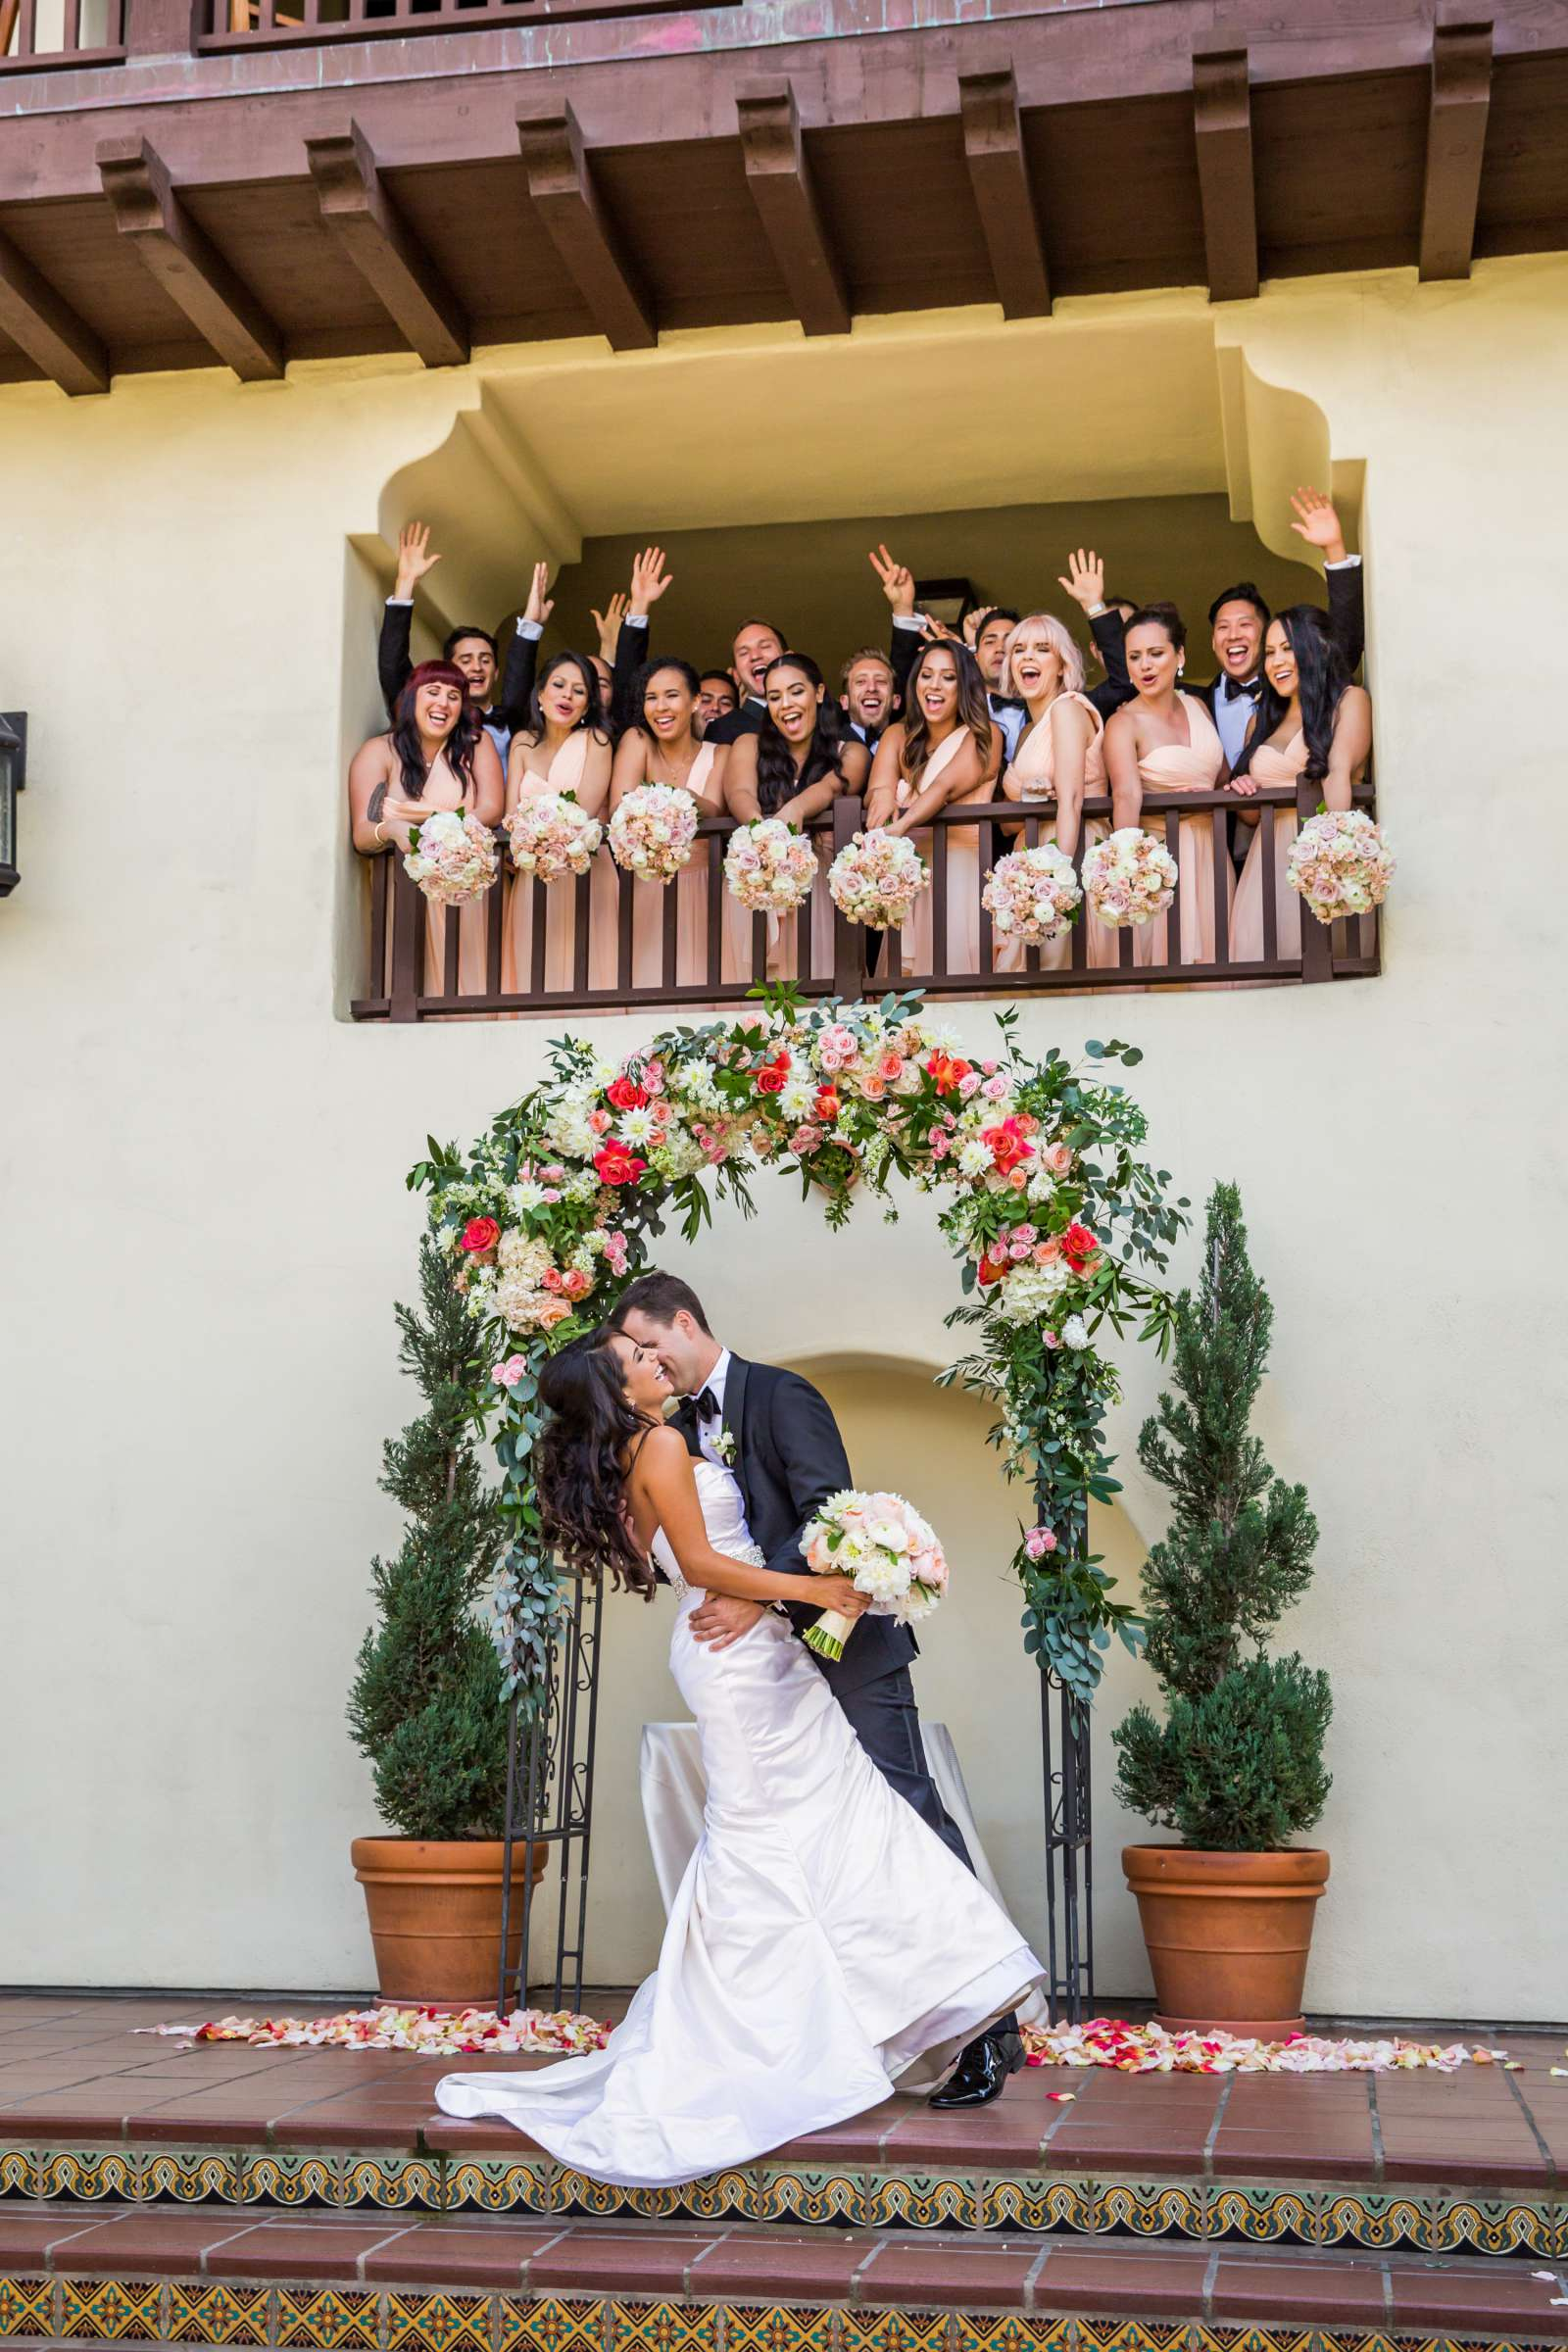 Estancia Wedding coordinated by SD Weddings by Gina, Diana and Andy Wedding Photo #8 by True Photography